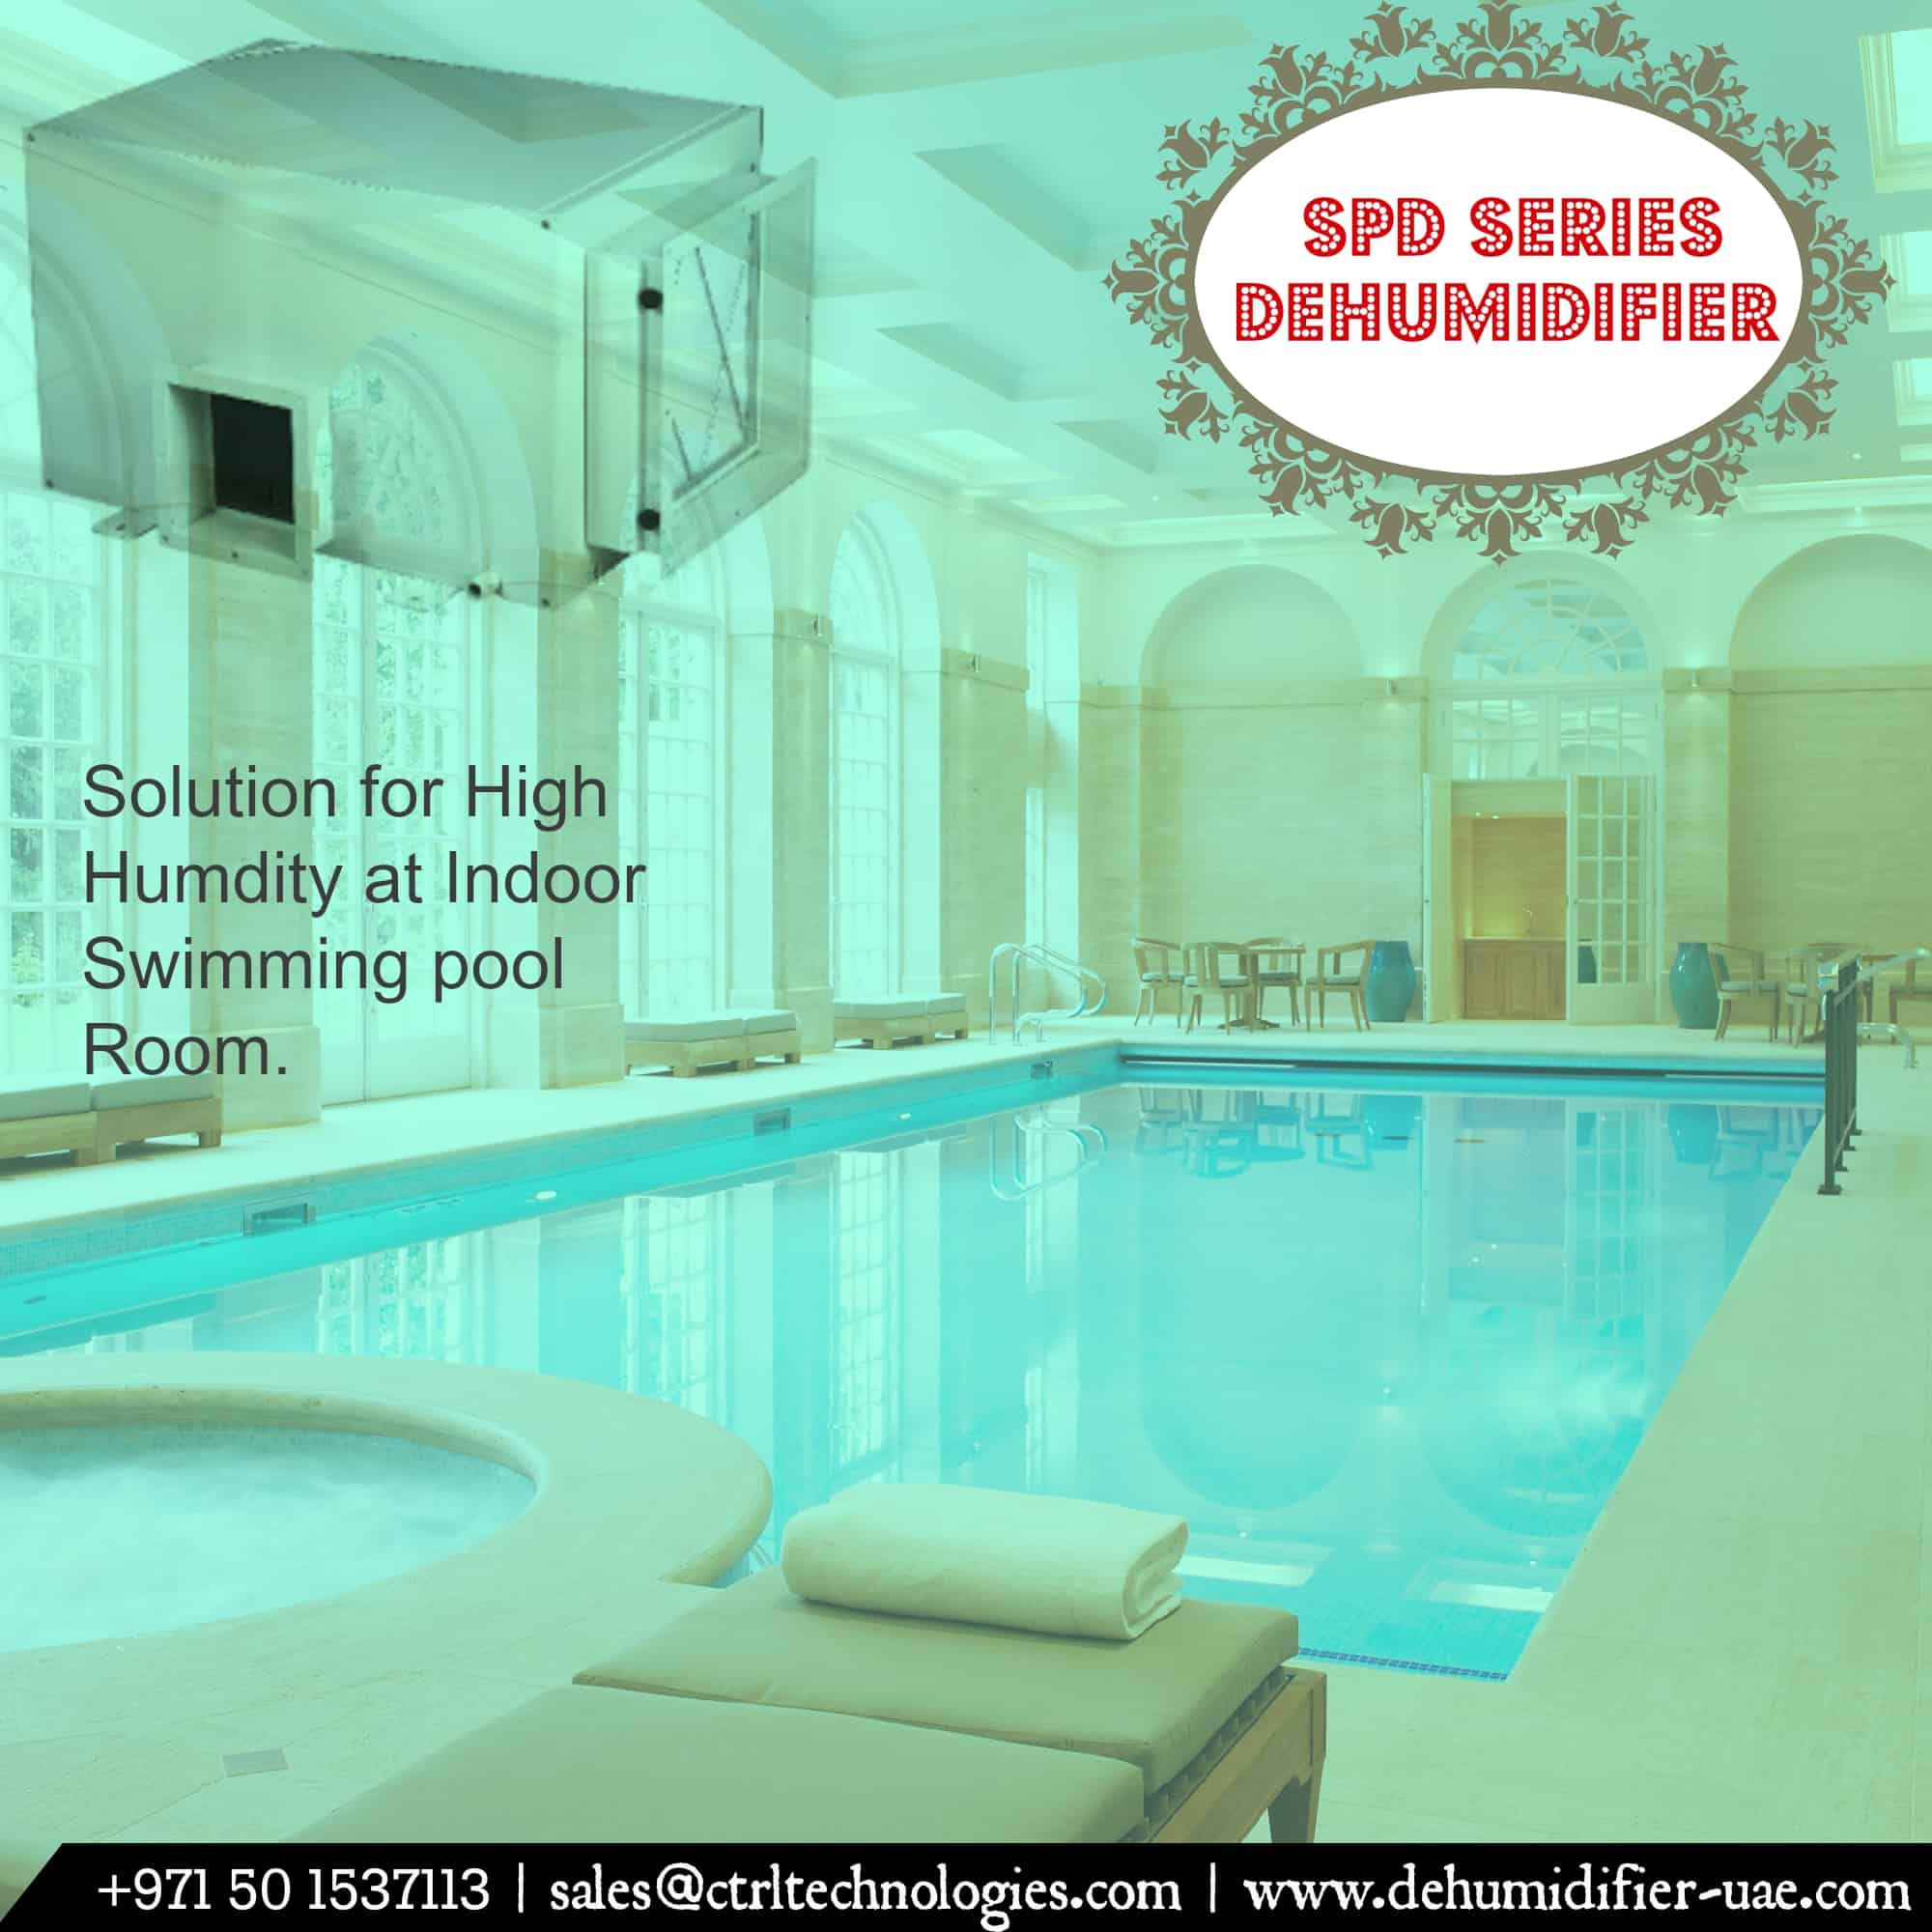 Dehumidifier for swimming pool & Spa.